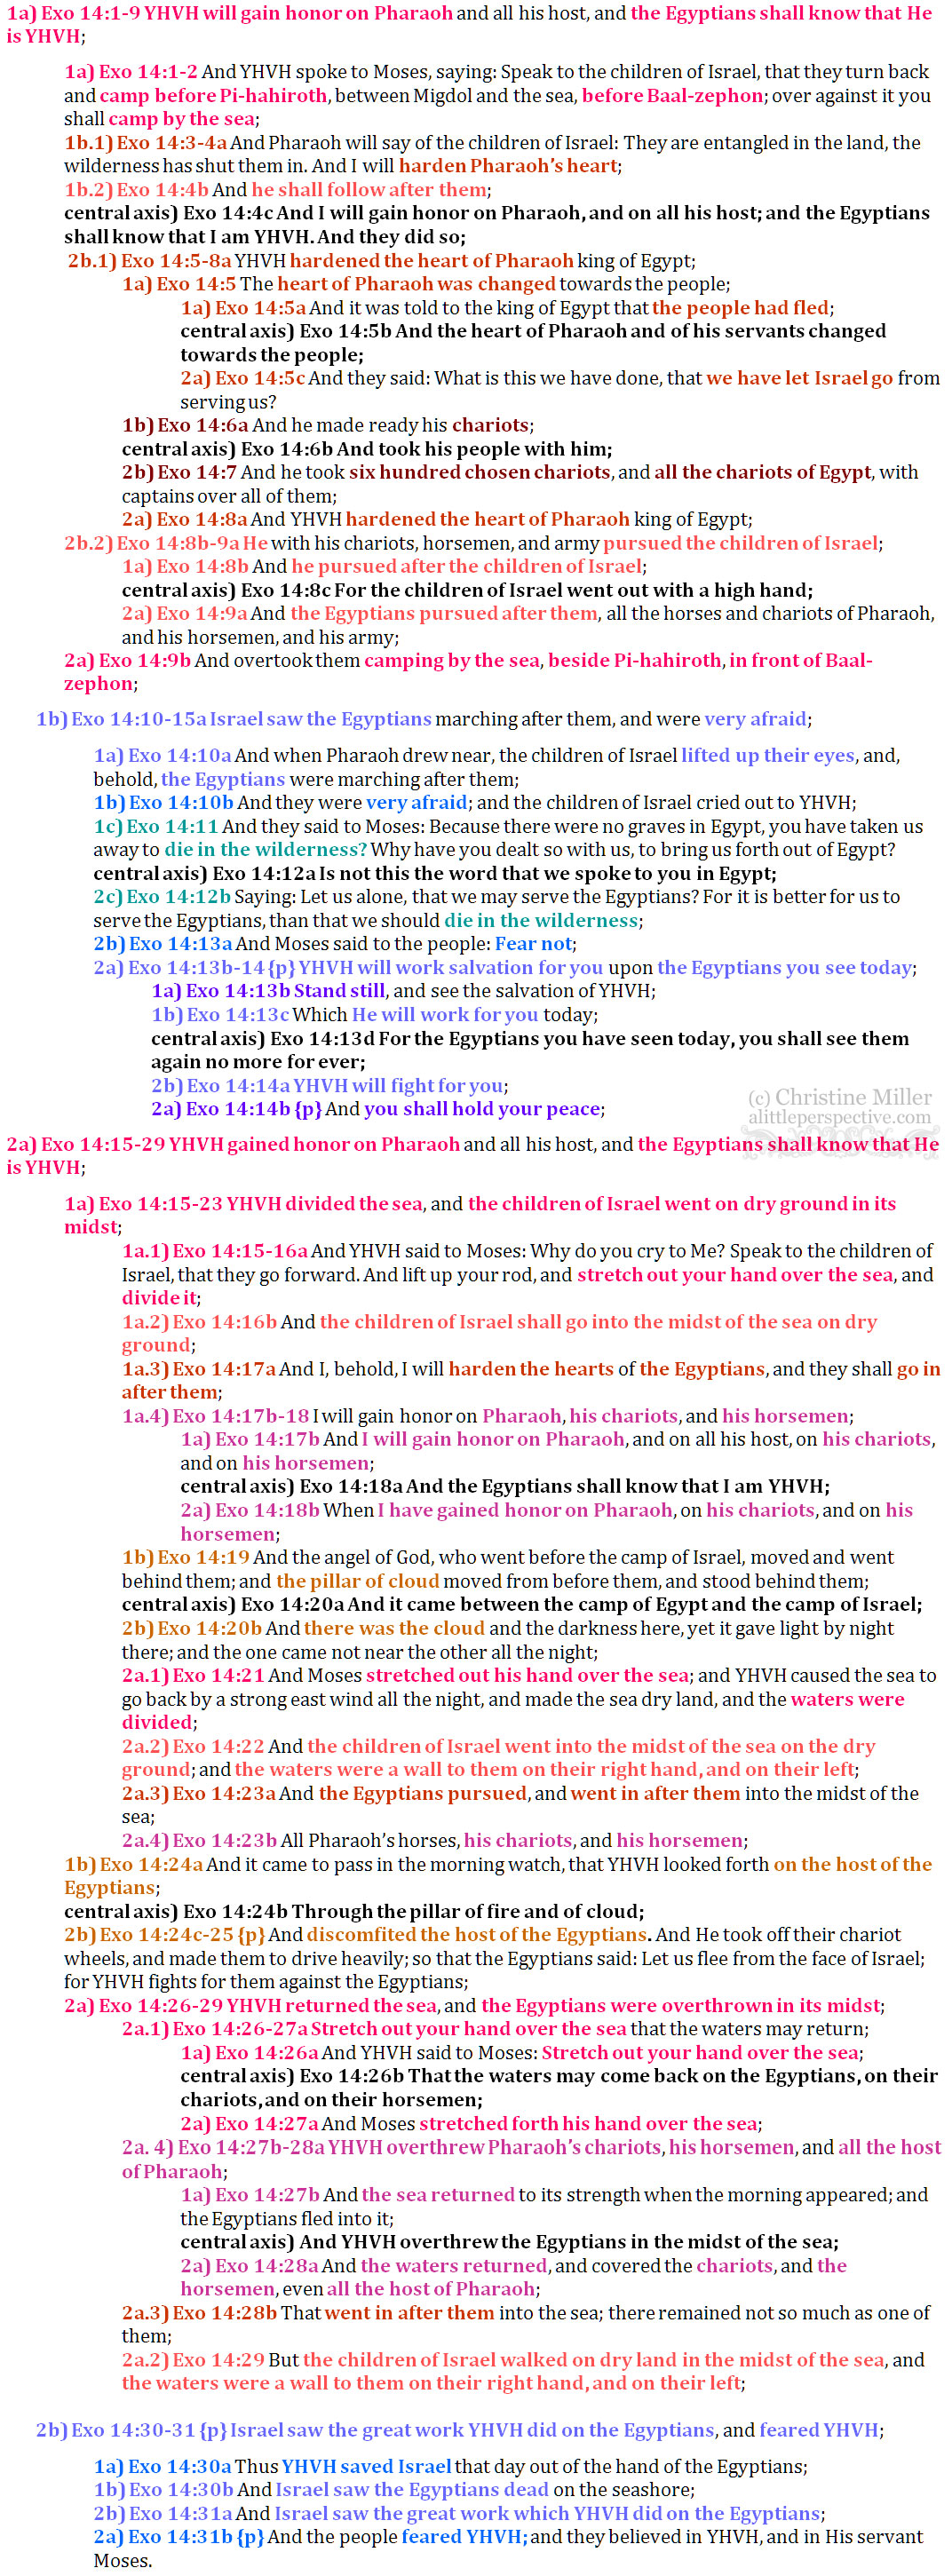 Exo 14:1-31 chiasm | christine's bible study at alittleperspective.com